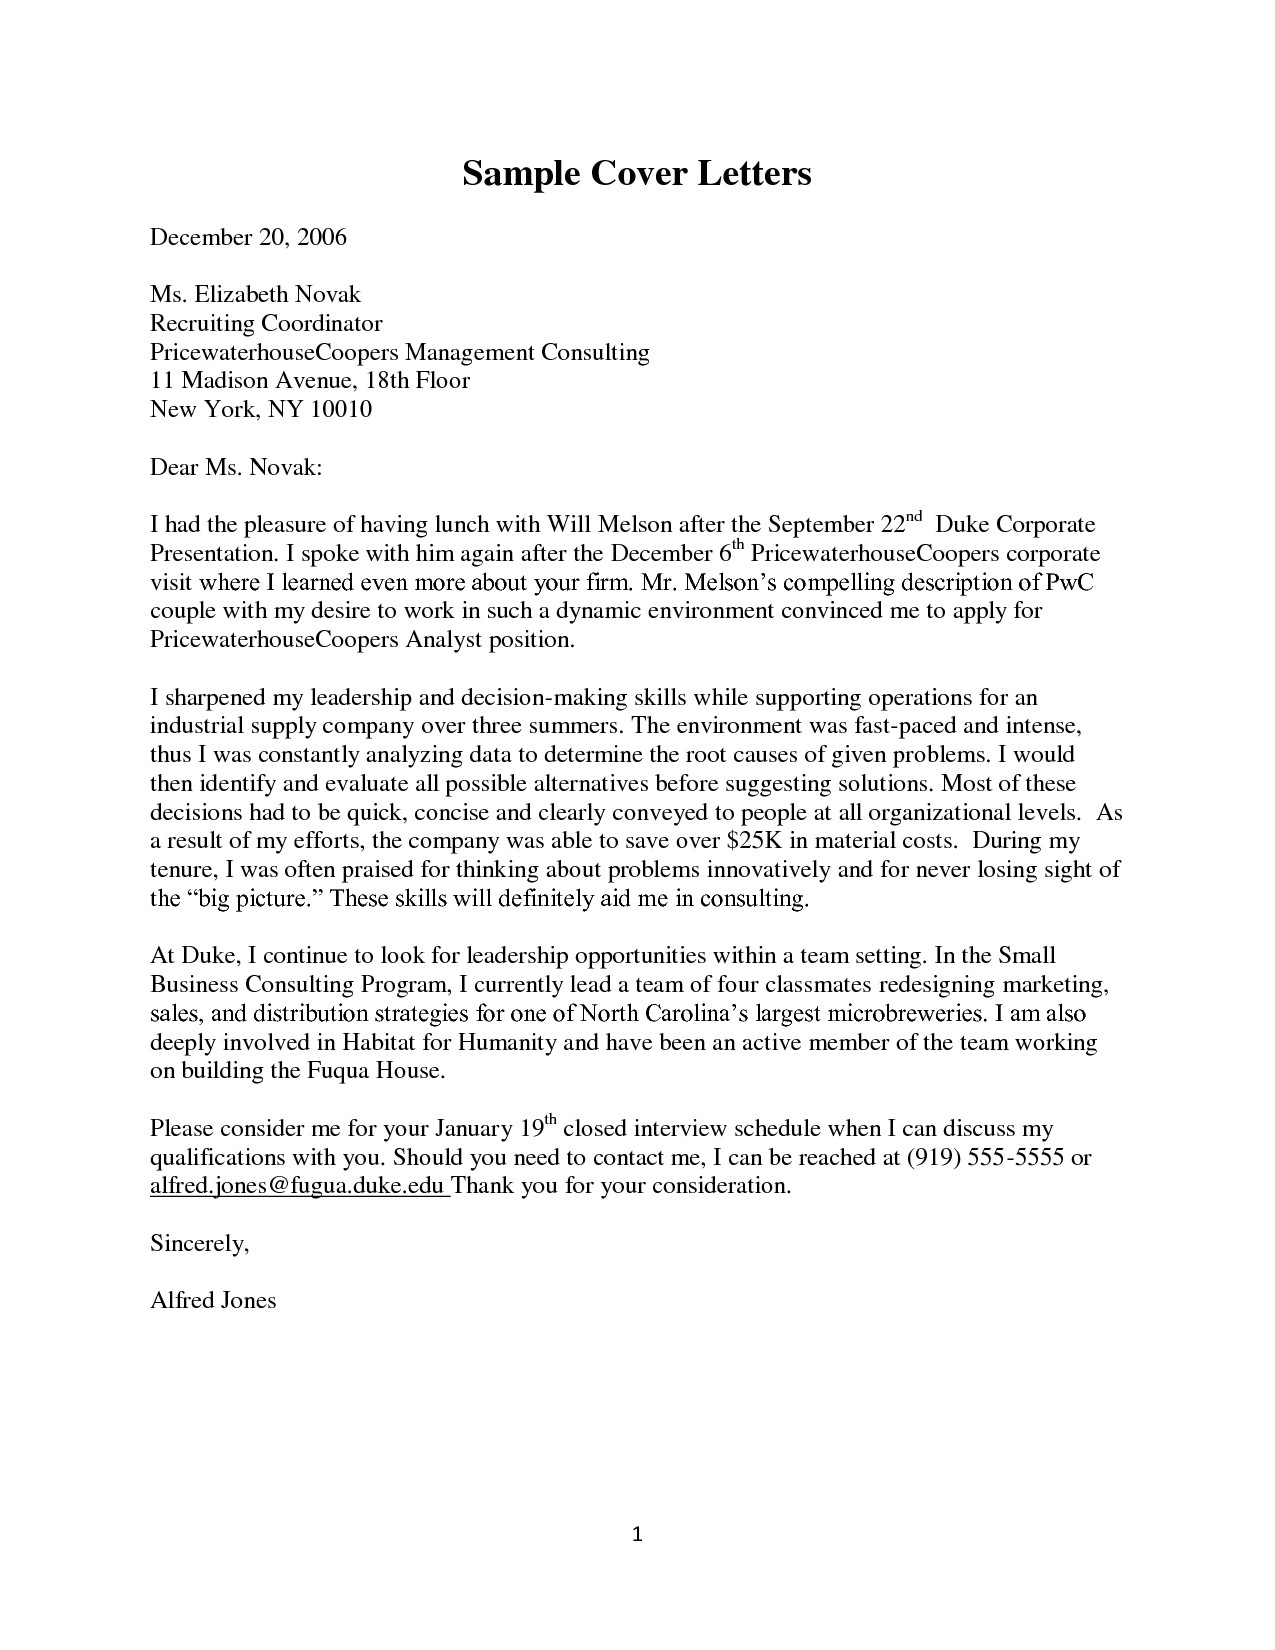 Premade Cover Letter Boston Consulting Group Cover Letter the Letter Sample